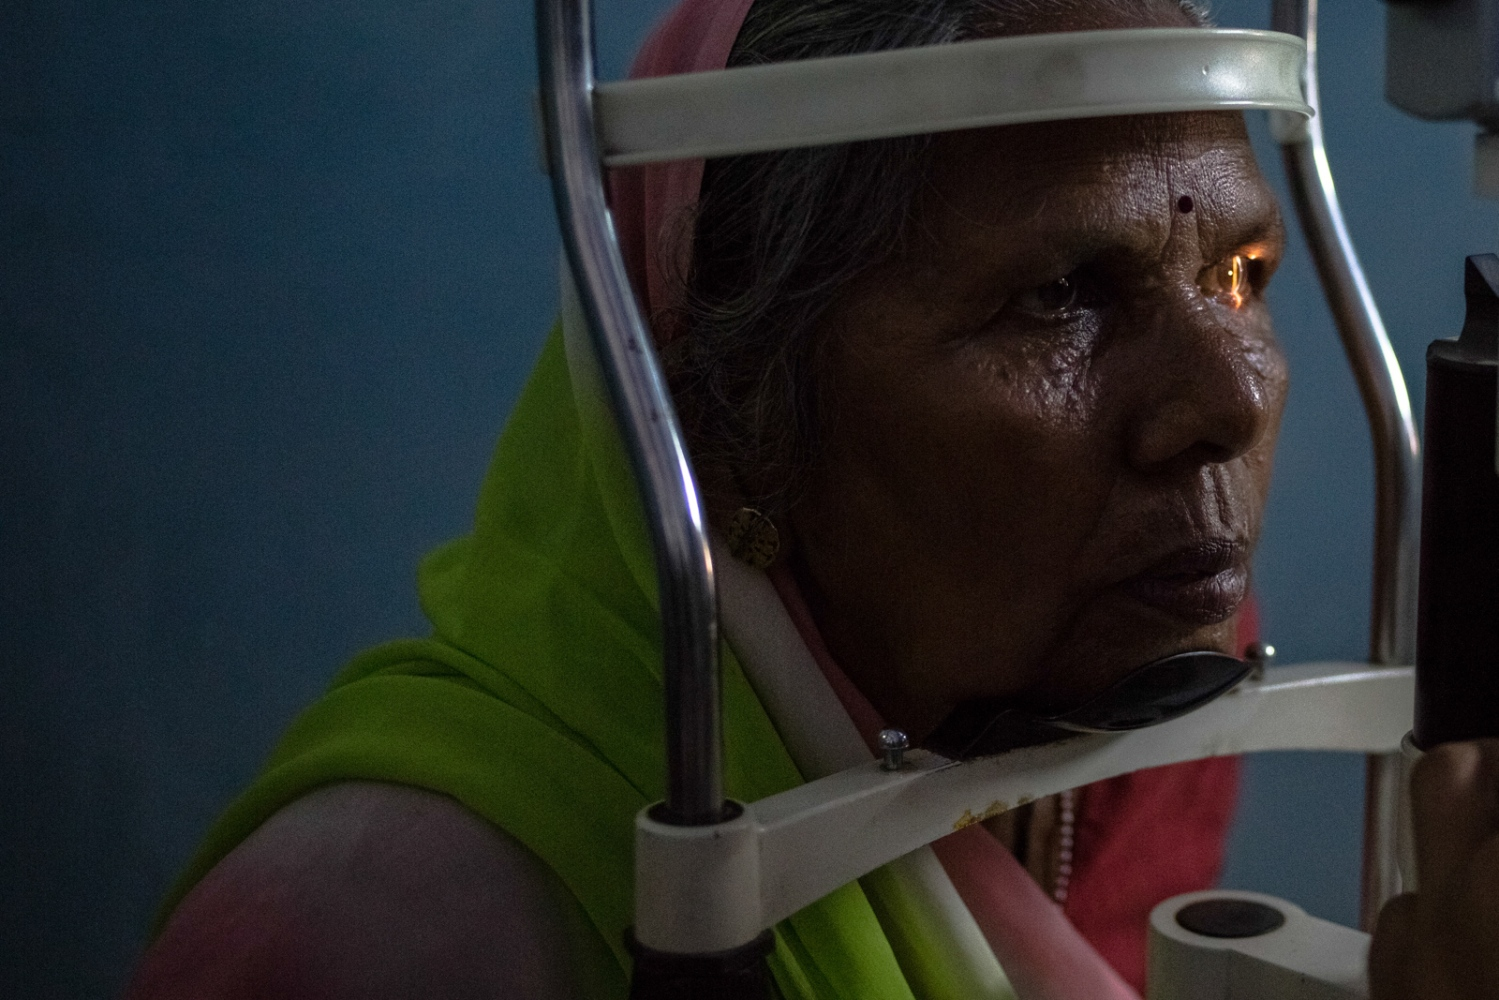 An Indian patient undergoes an eye examination at the Dr Shroff Charity Eye Hospital Vision Centre in Malakhera village, some 30 kms from Alwar in the state of Rajasthan on August 13, 2014.